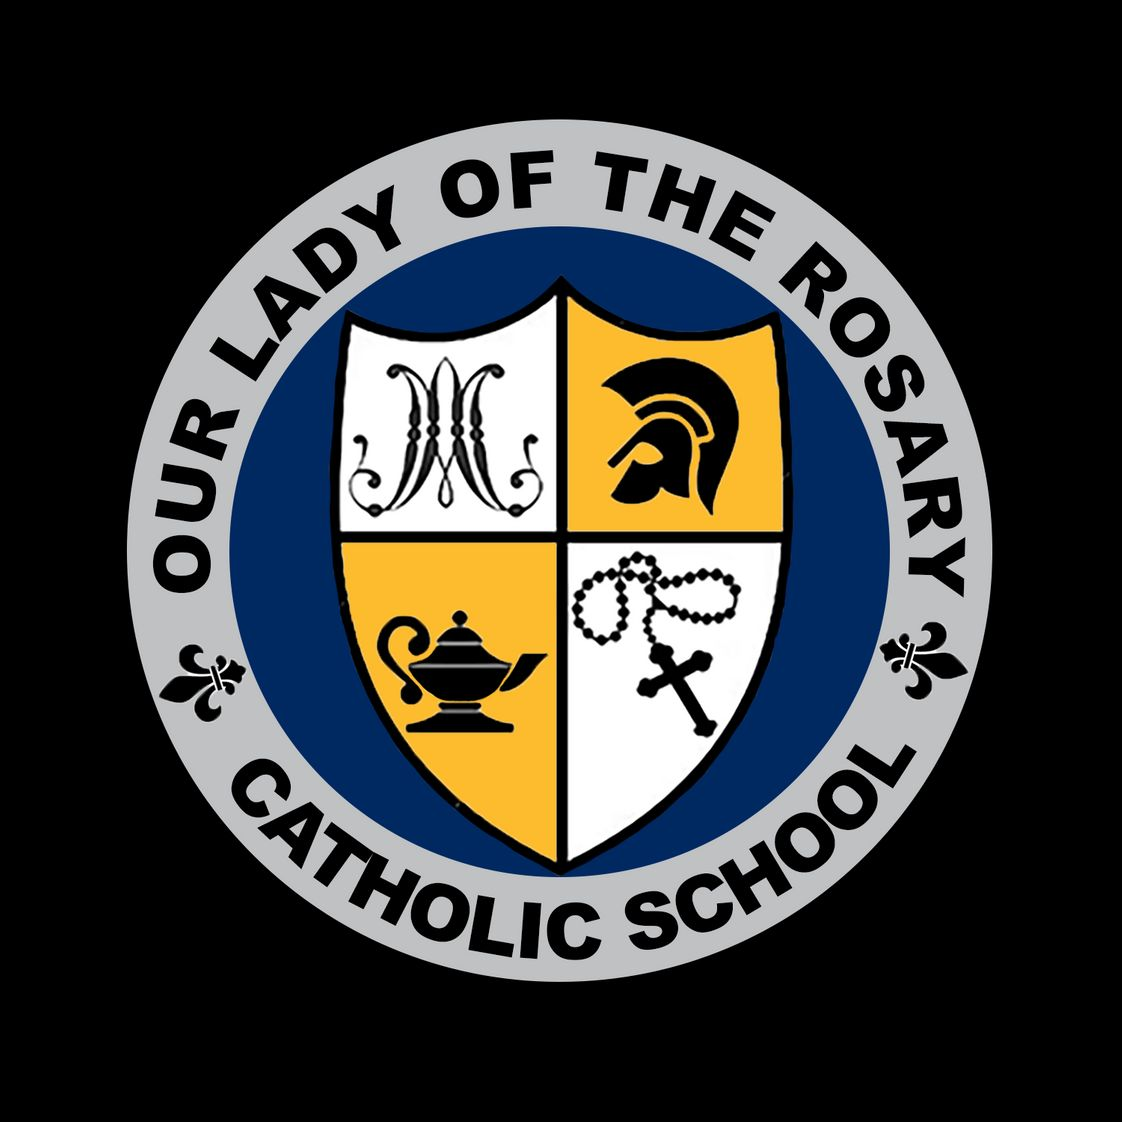 Our Lady of the Rosary School, Paramount Photo #1